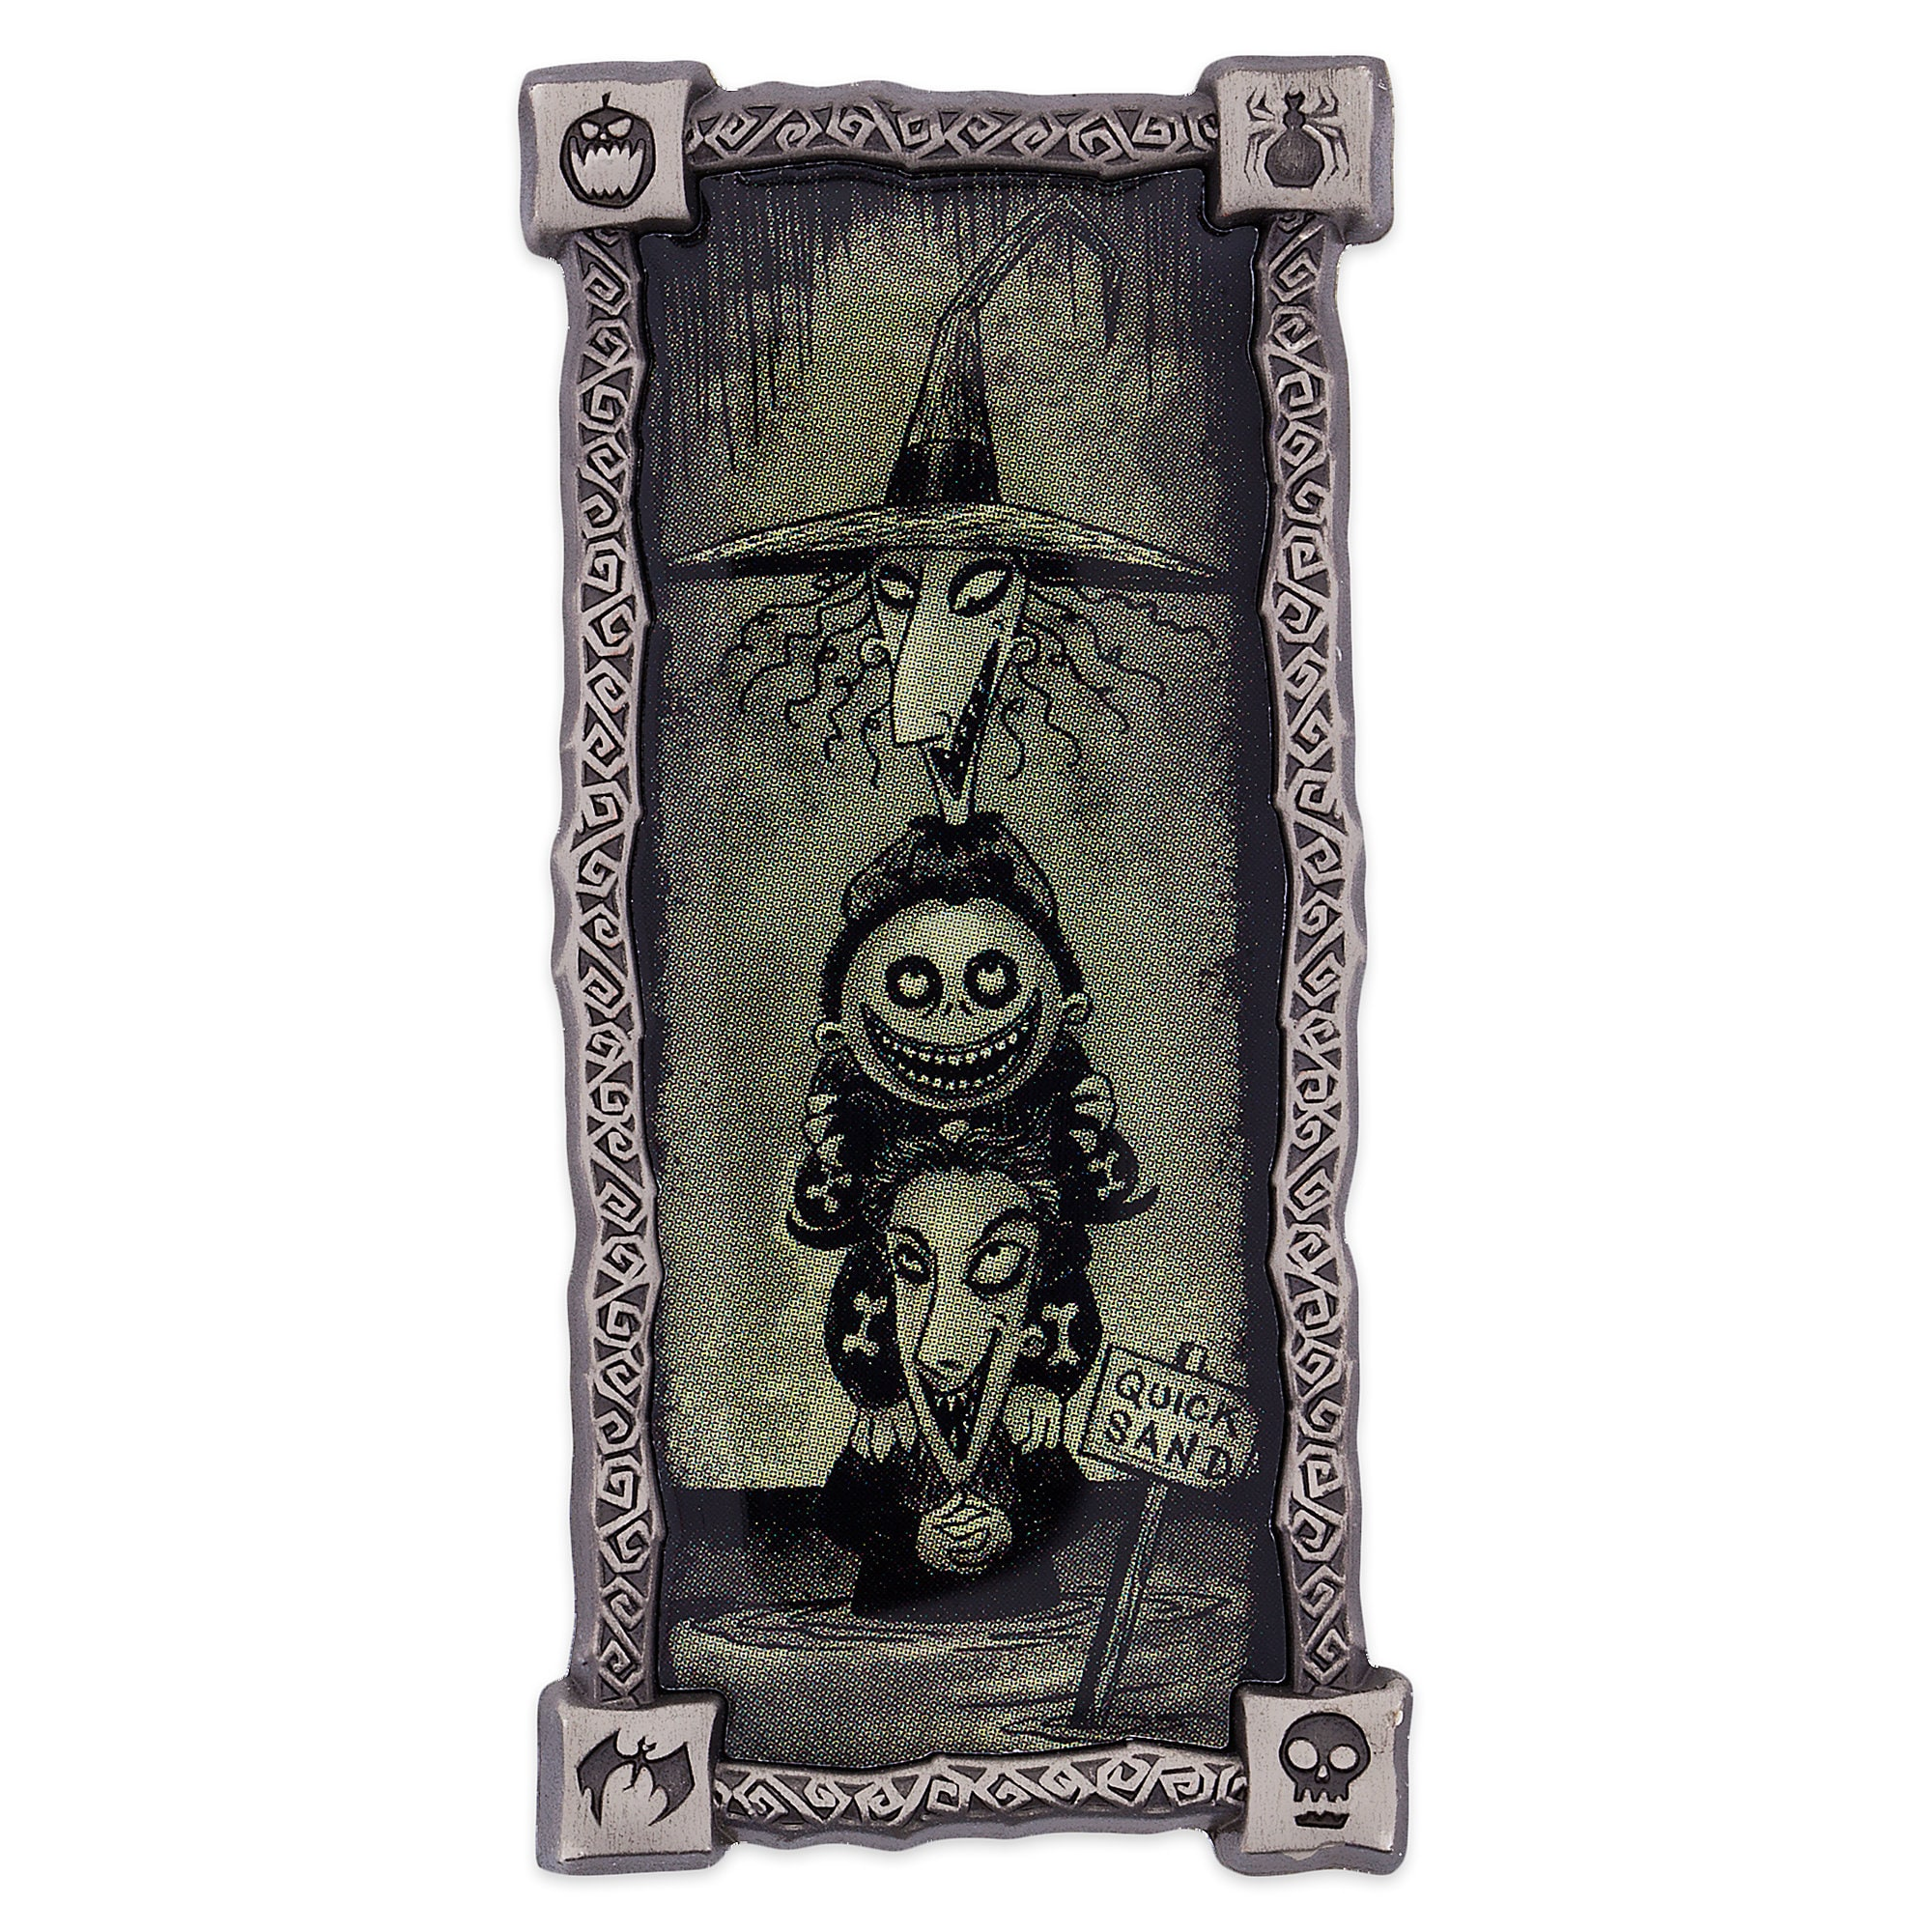 Lock, Shock, and Barrel Haunted Mansion Portrait Pin